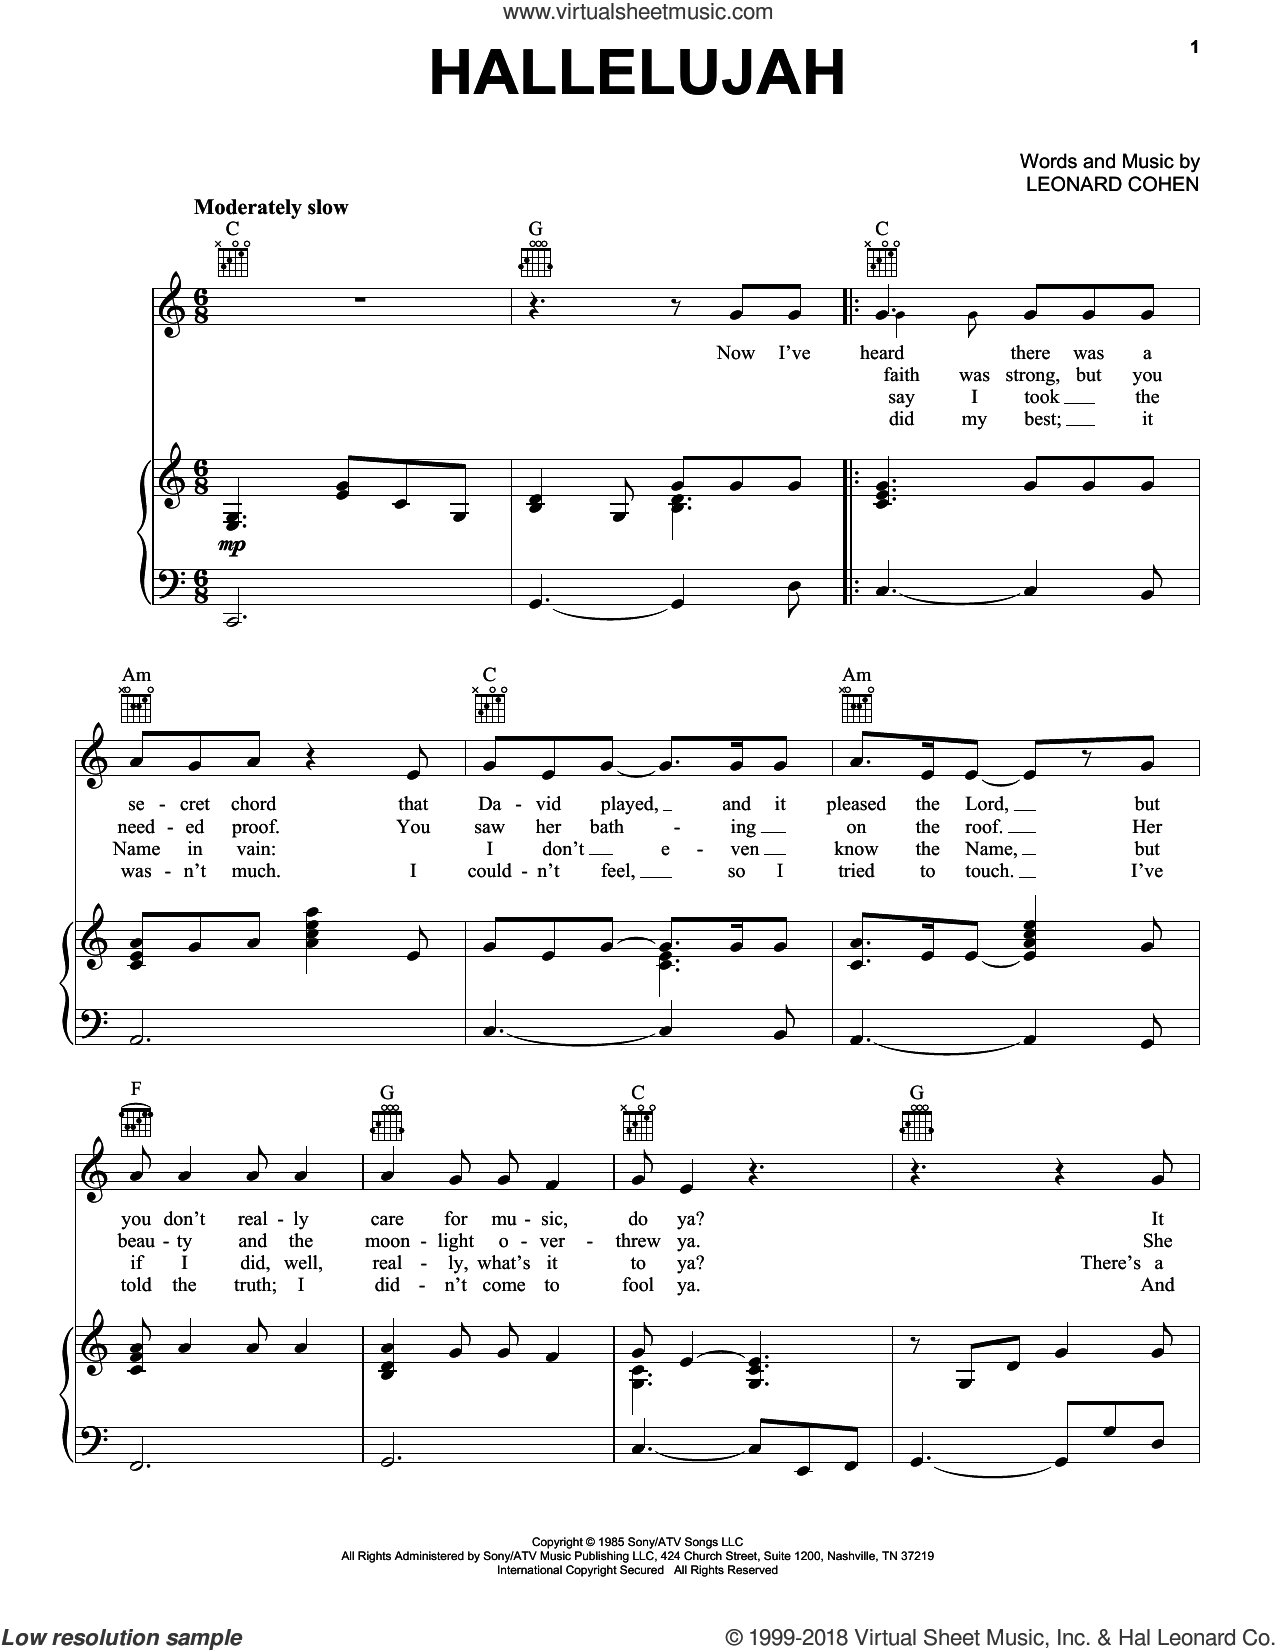 Hallelujah - Free Printable Piano Sheet Music For Hallelujah By Leonard Cohen